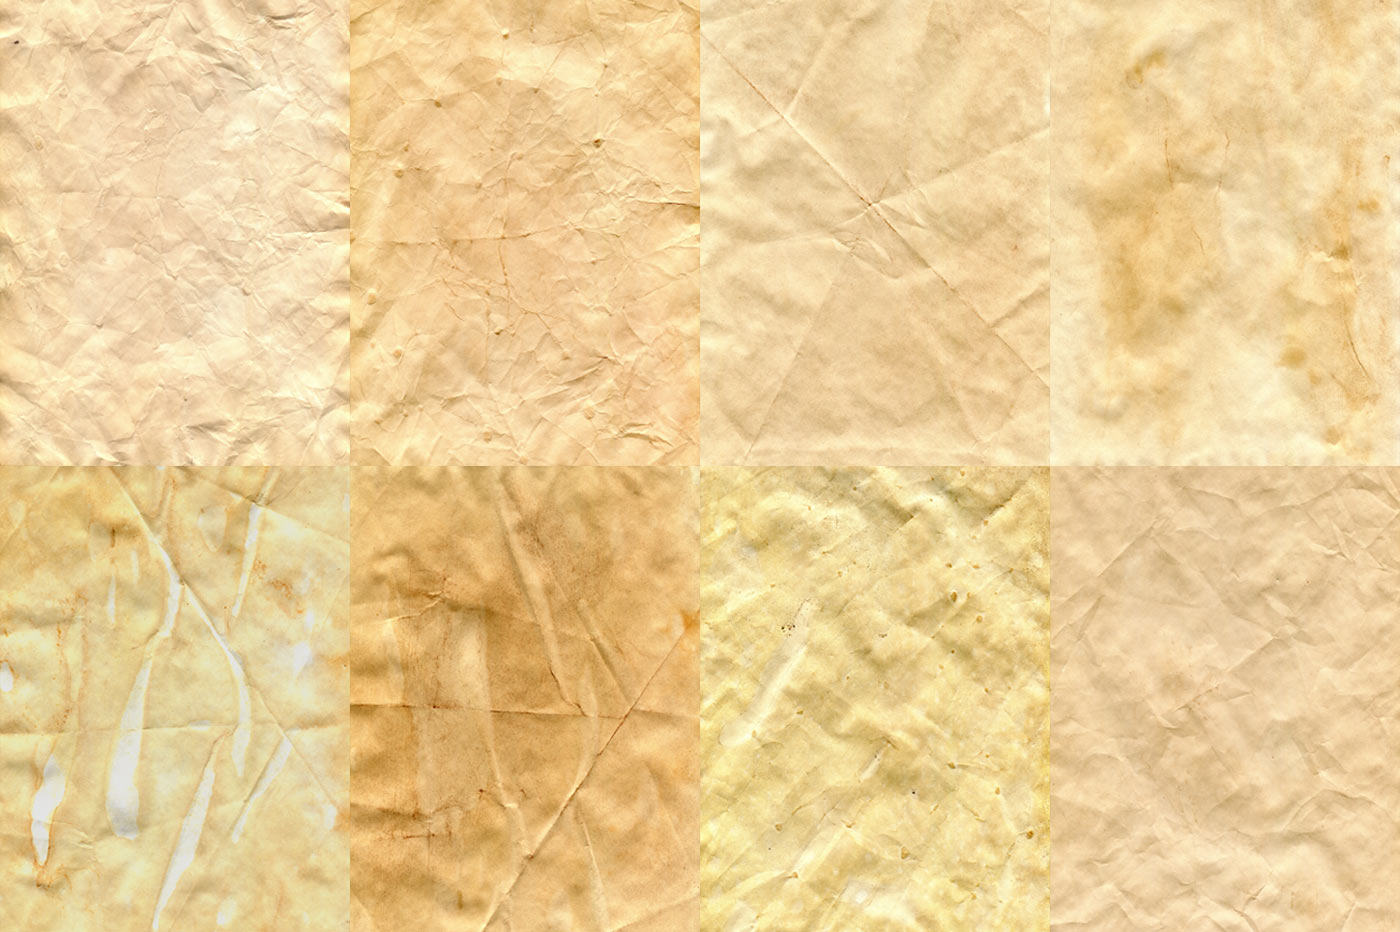 40 Vintage Paper Textures example image 3